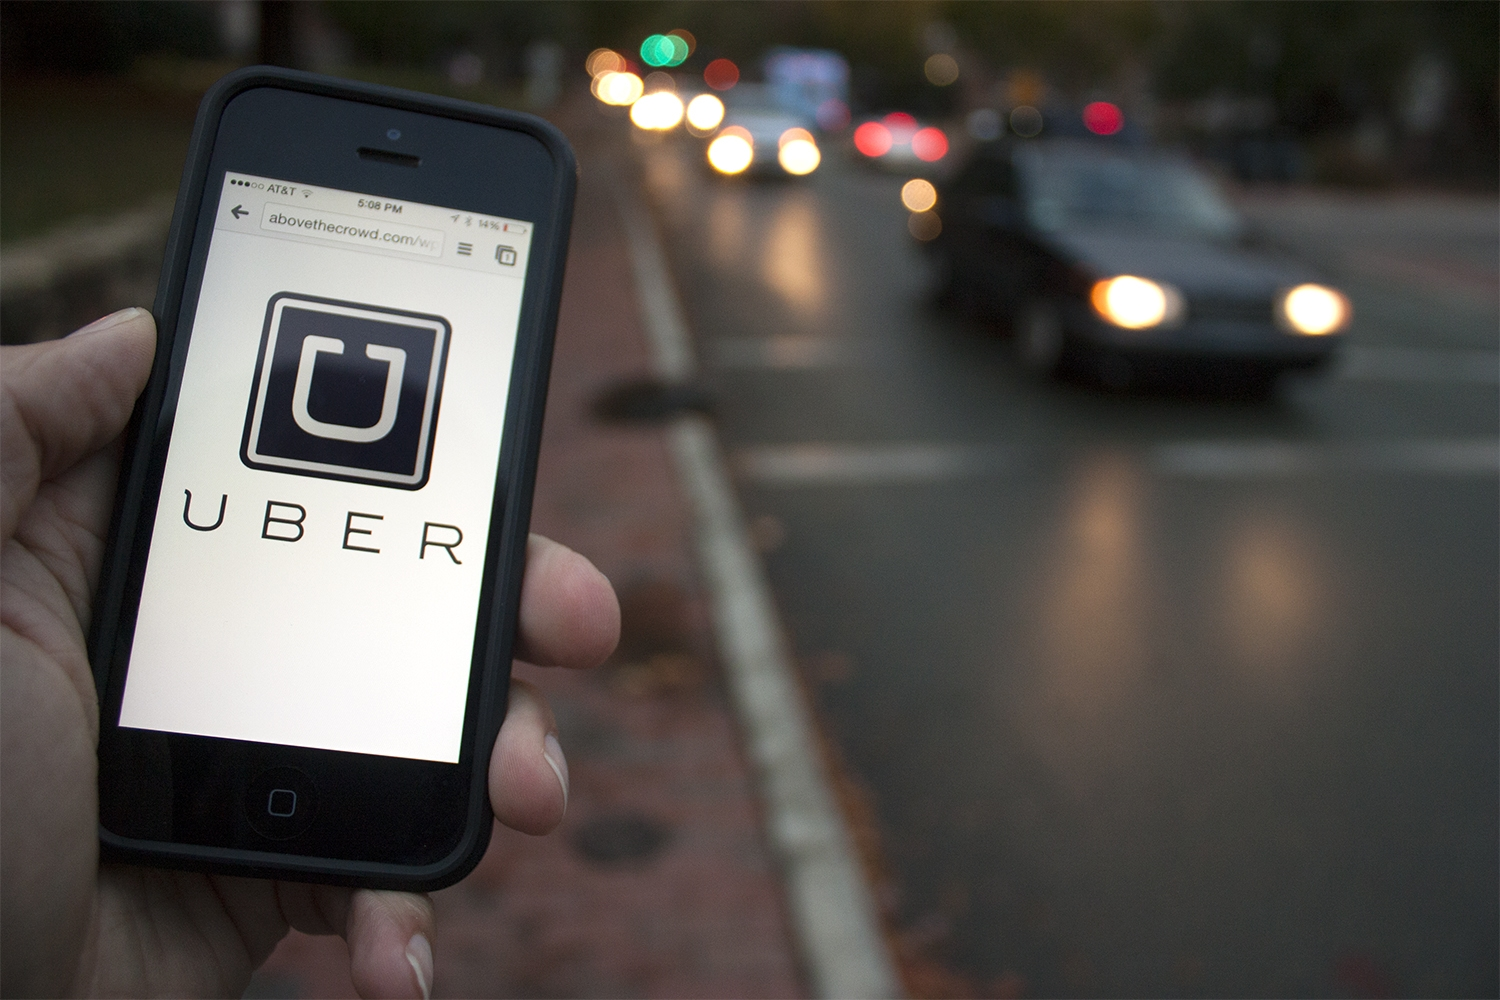 The curious case of uber